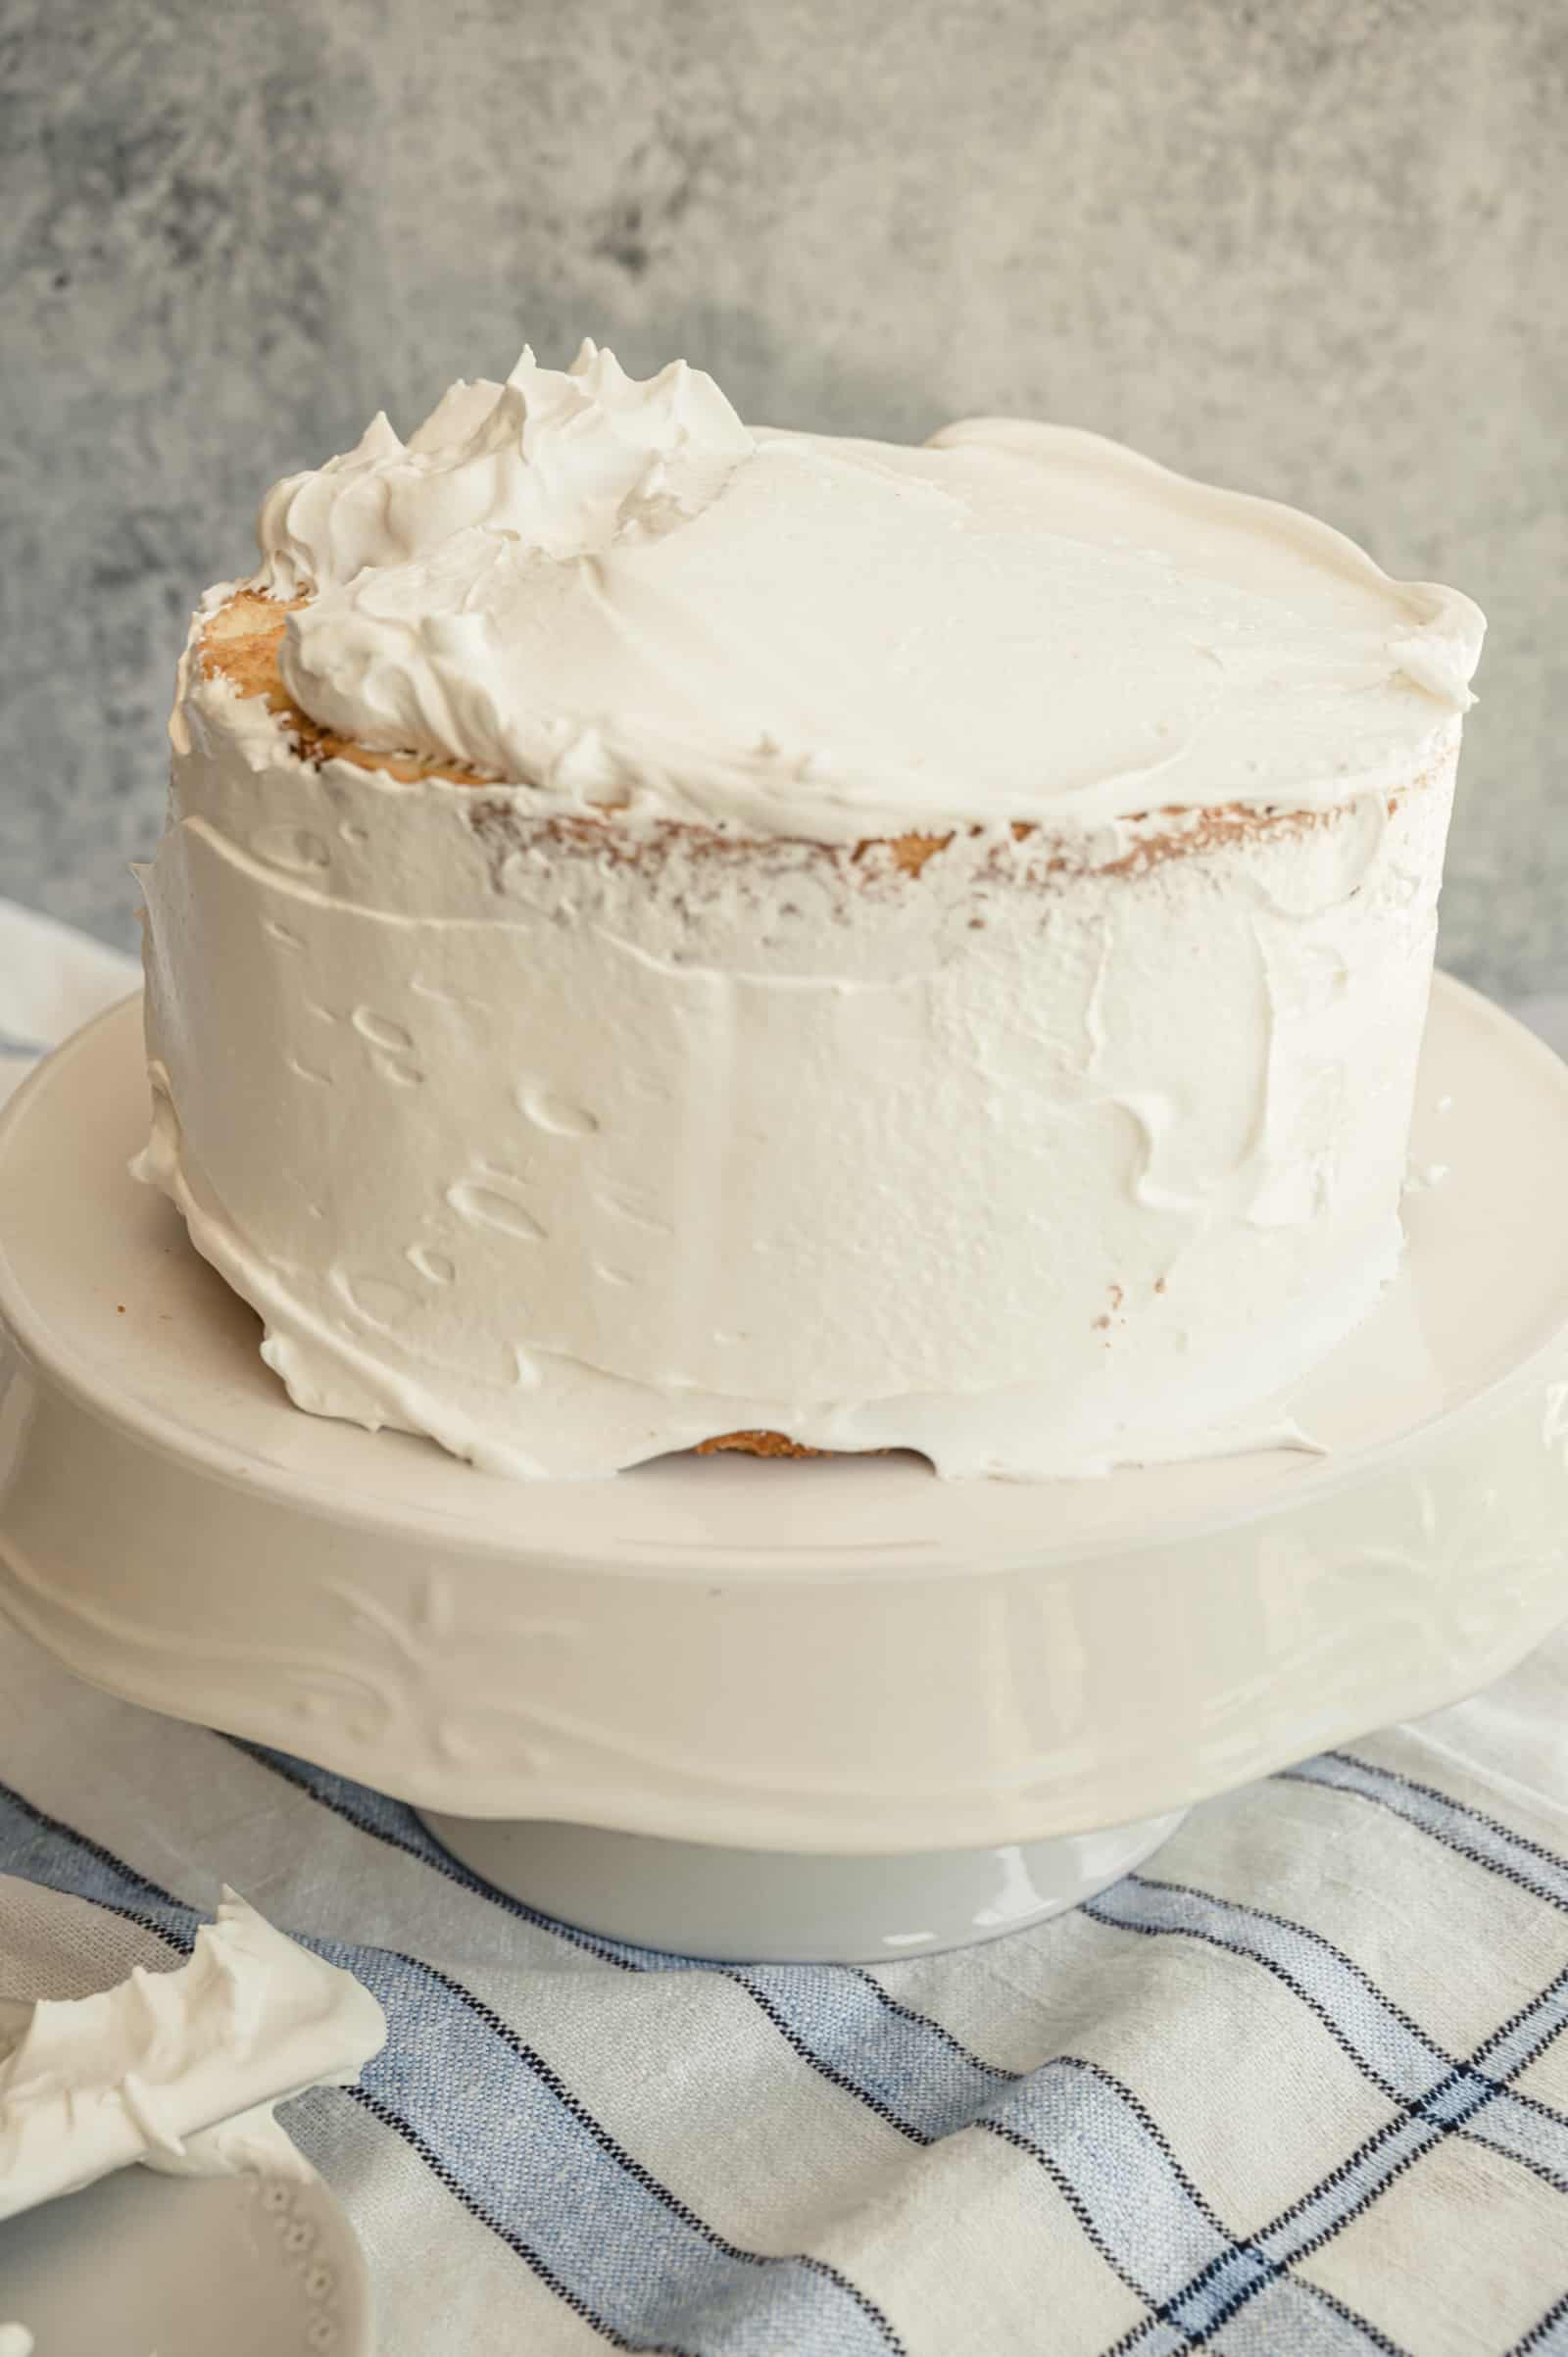 coconut cake being frosted with marshmallow meringue frosting